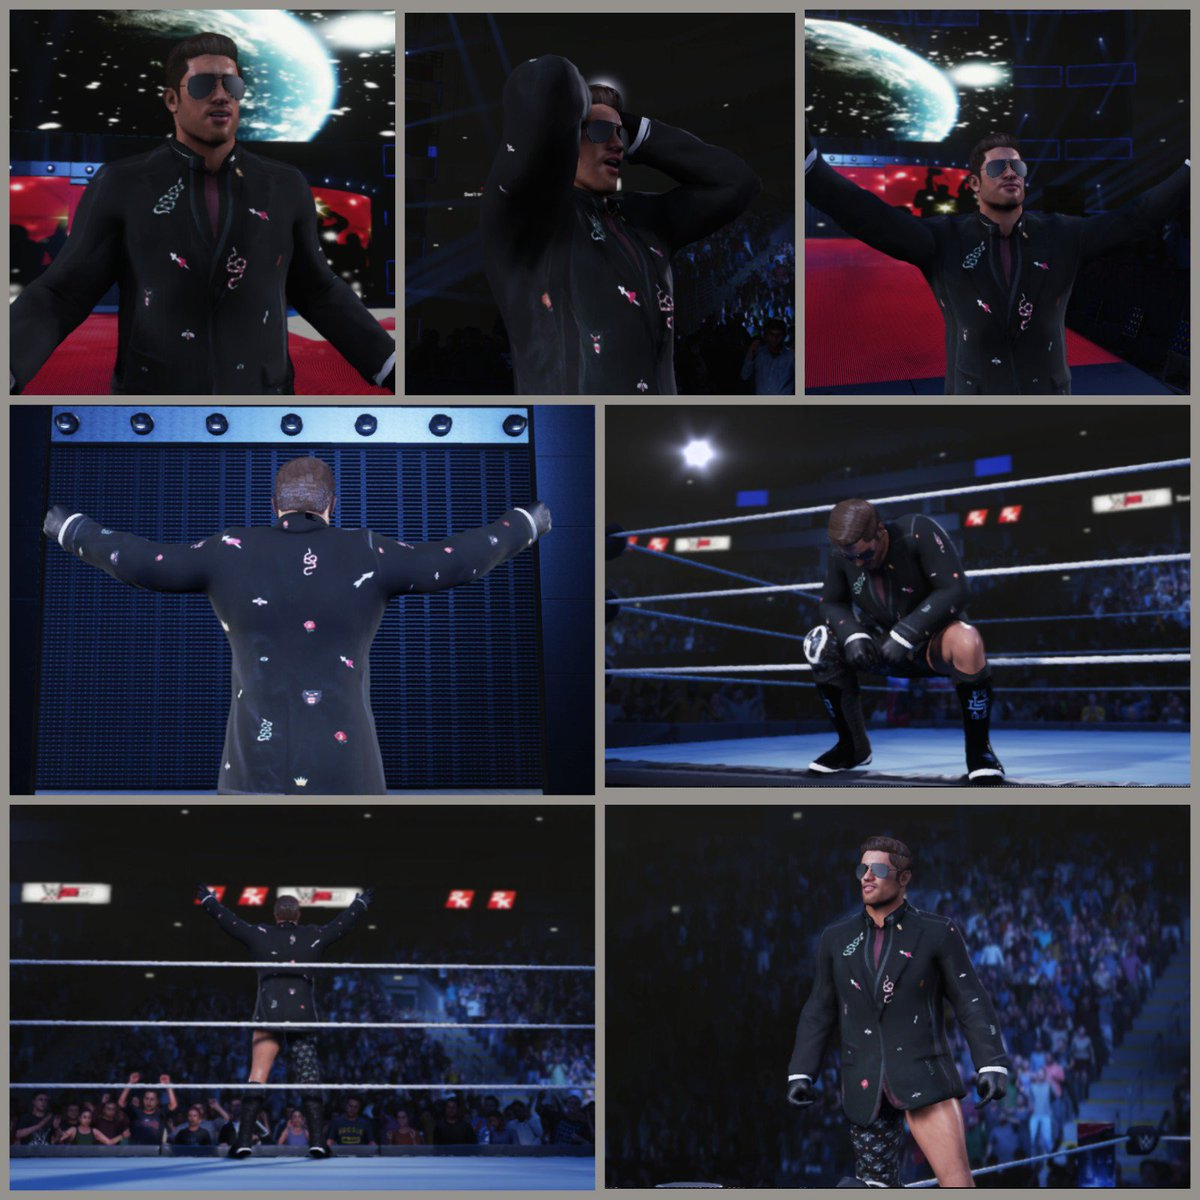 """""""I'm gonna walk down the aisle in style and profile."""" - Ric Flair. <br>http://pic.twitter.com/lVm3pDJDnd"""